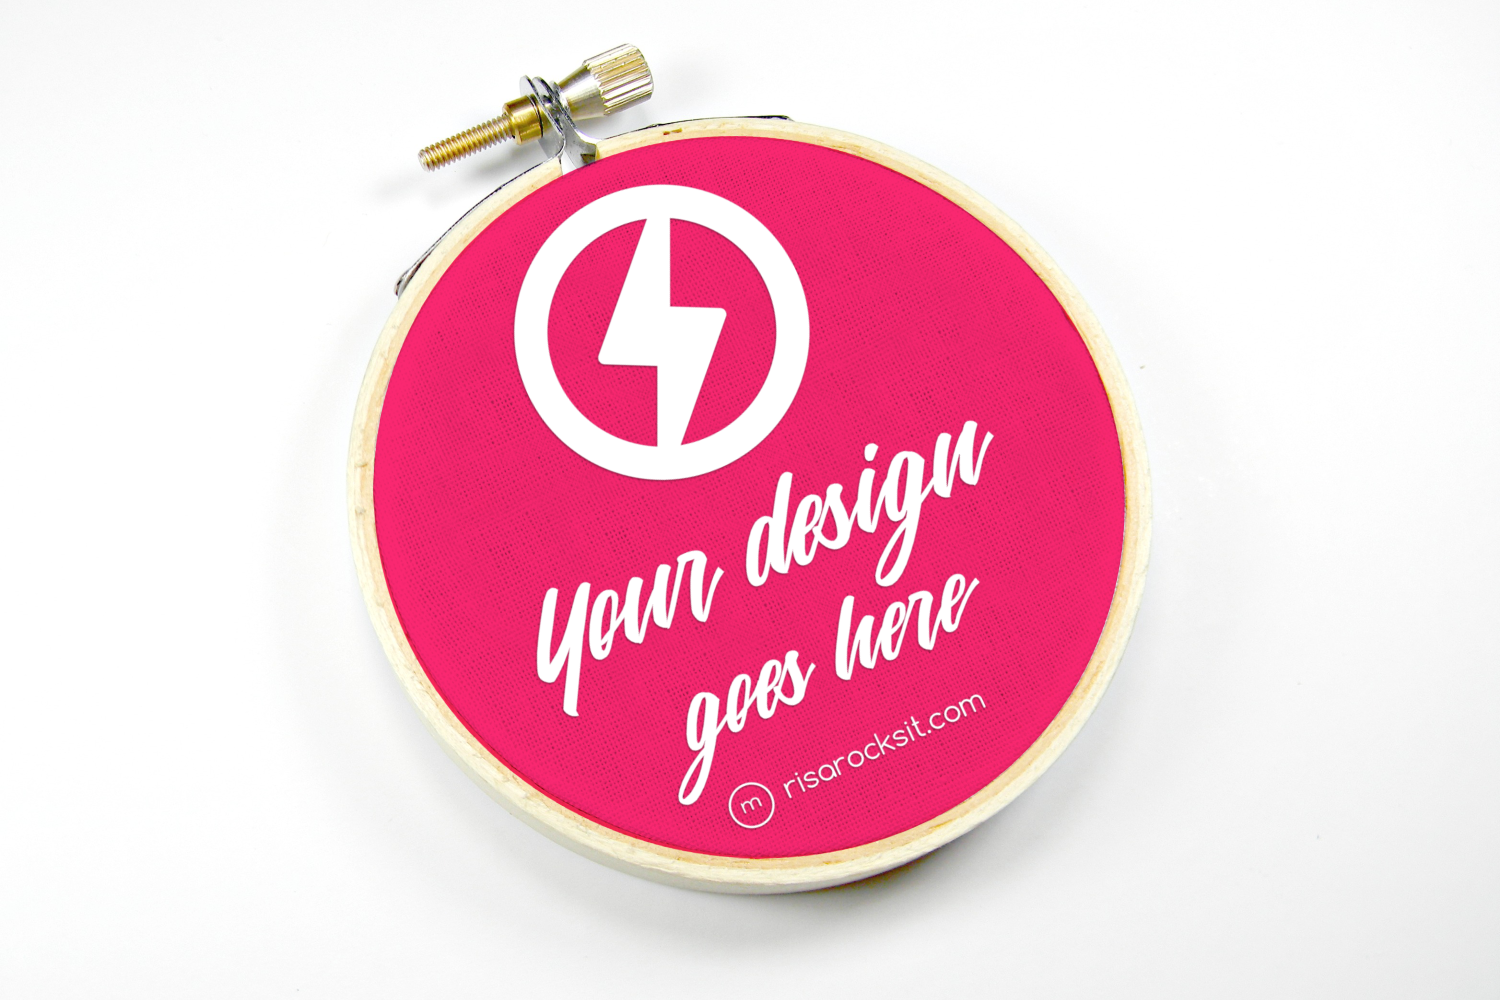 Embroidery Hoop Mock Up By Risa Rocks It Thehungryjpeg Com